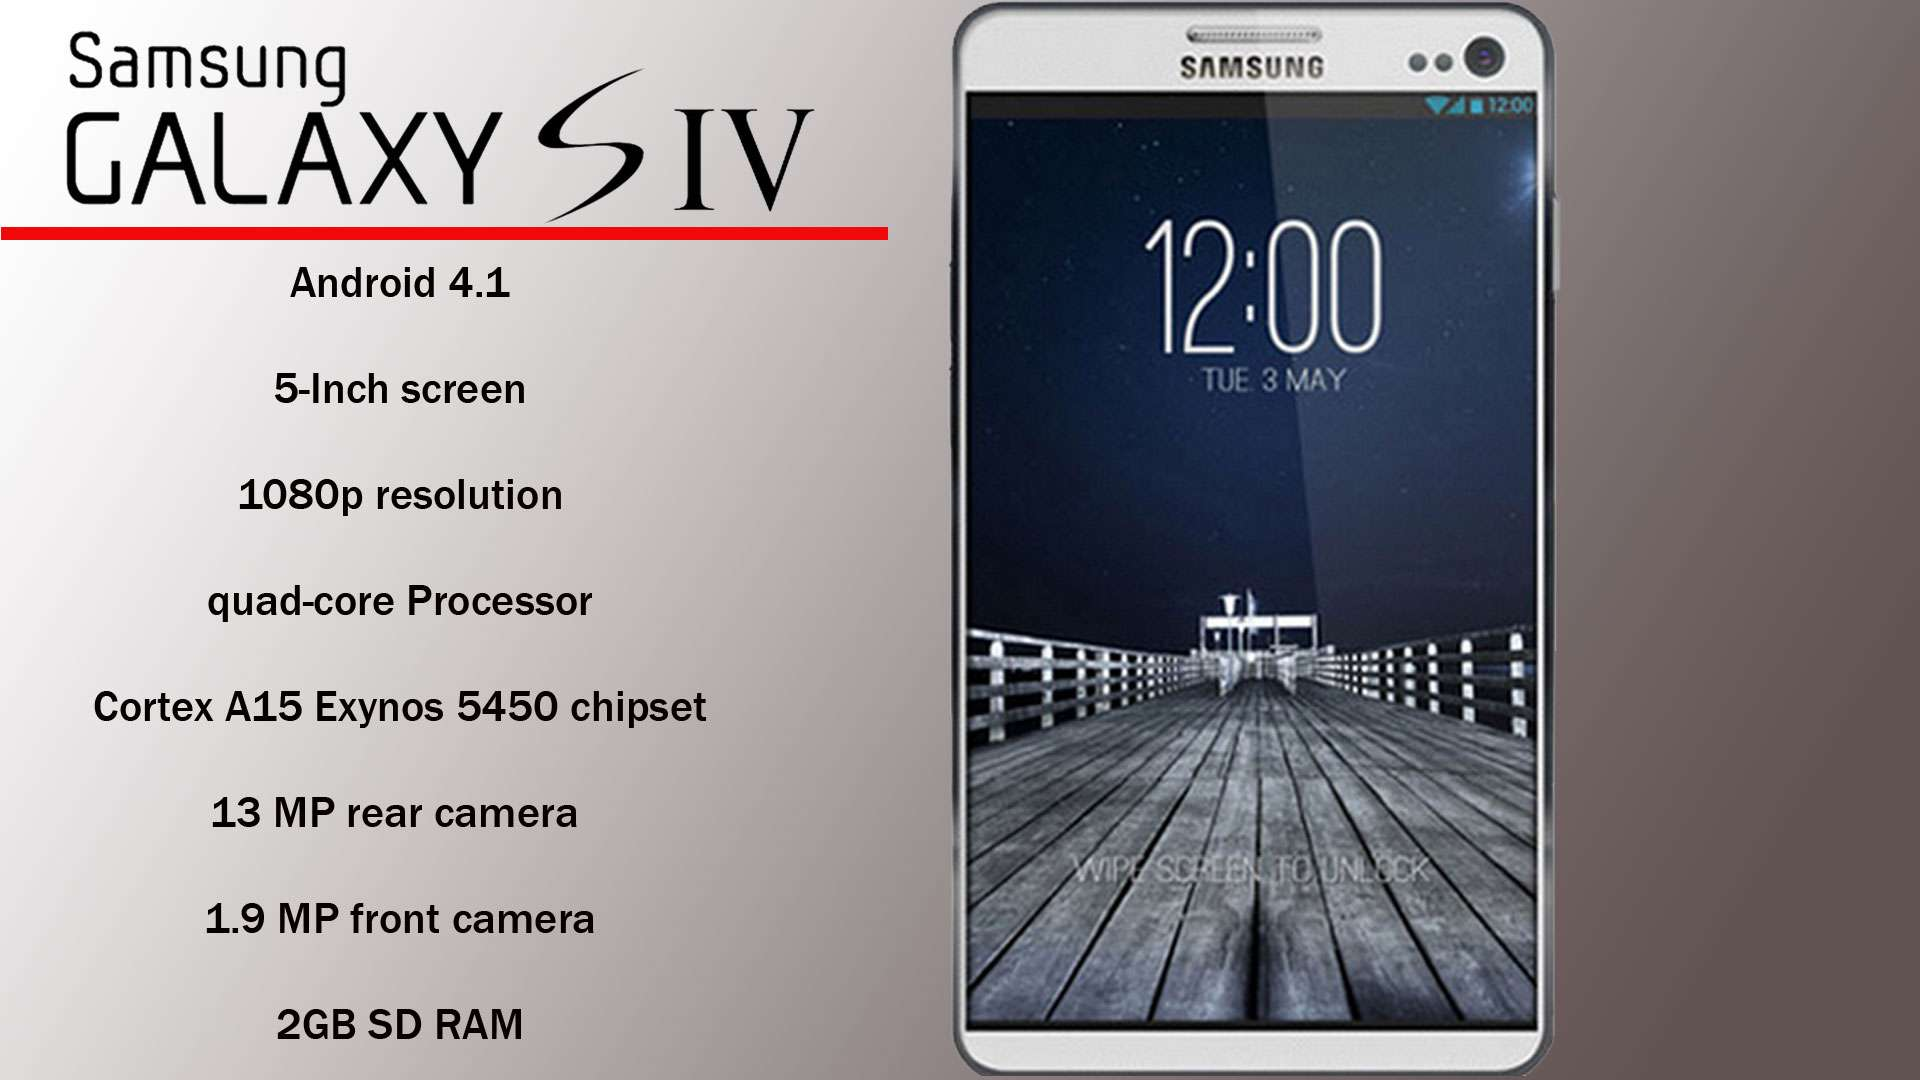 Specifications-In-Samsung-Galaxy-S4 in image